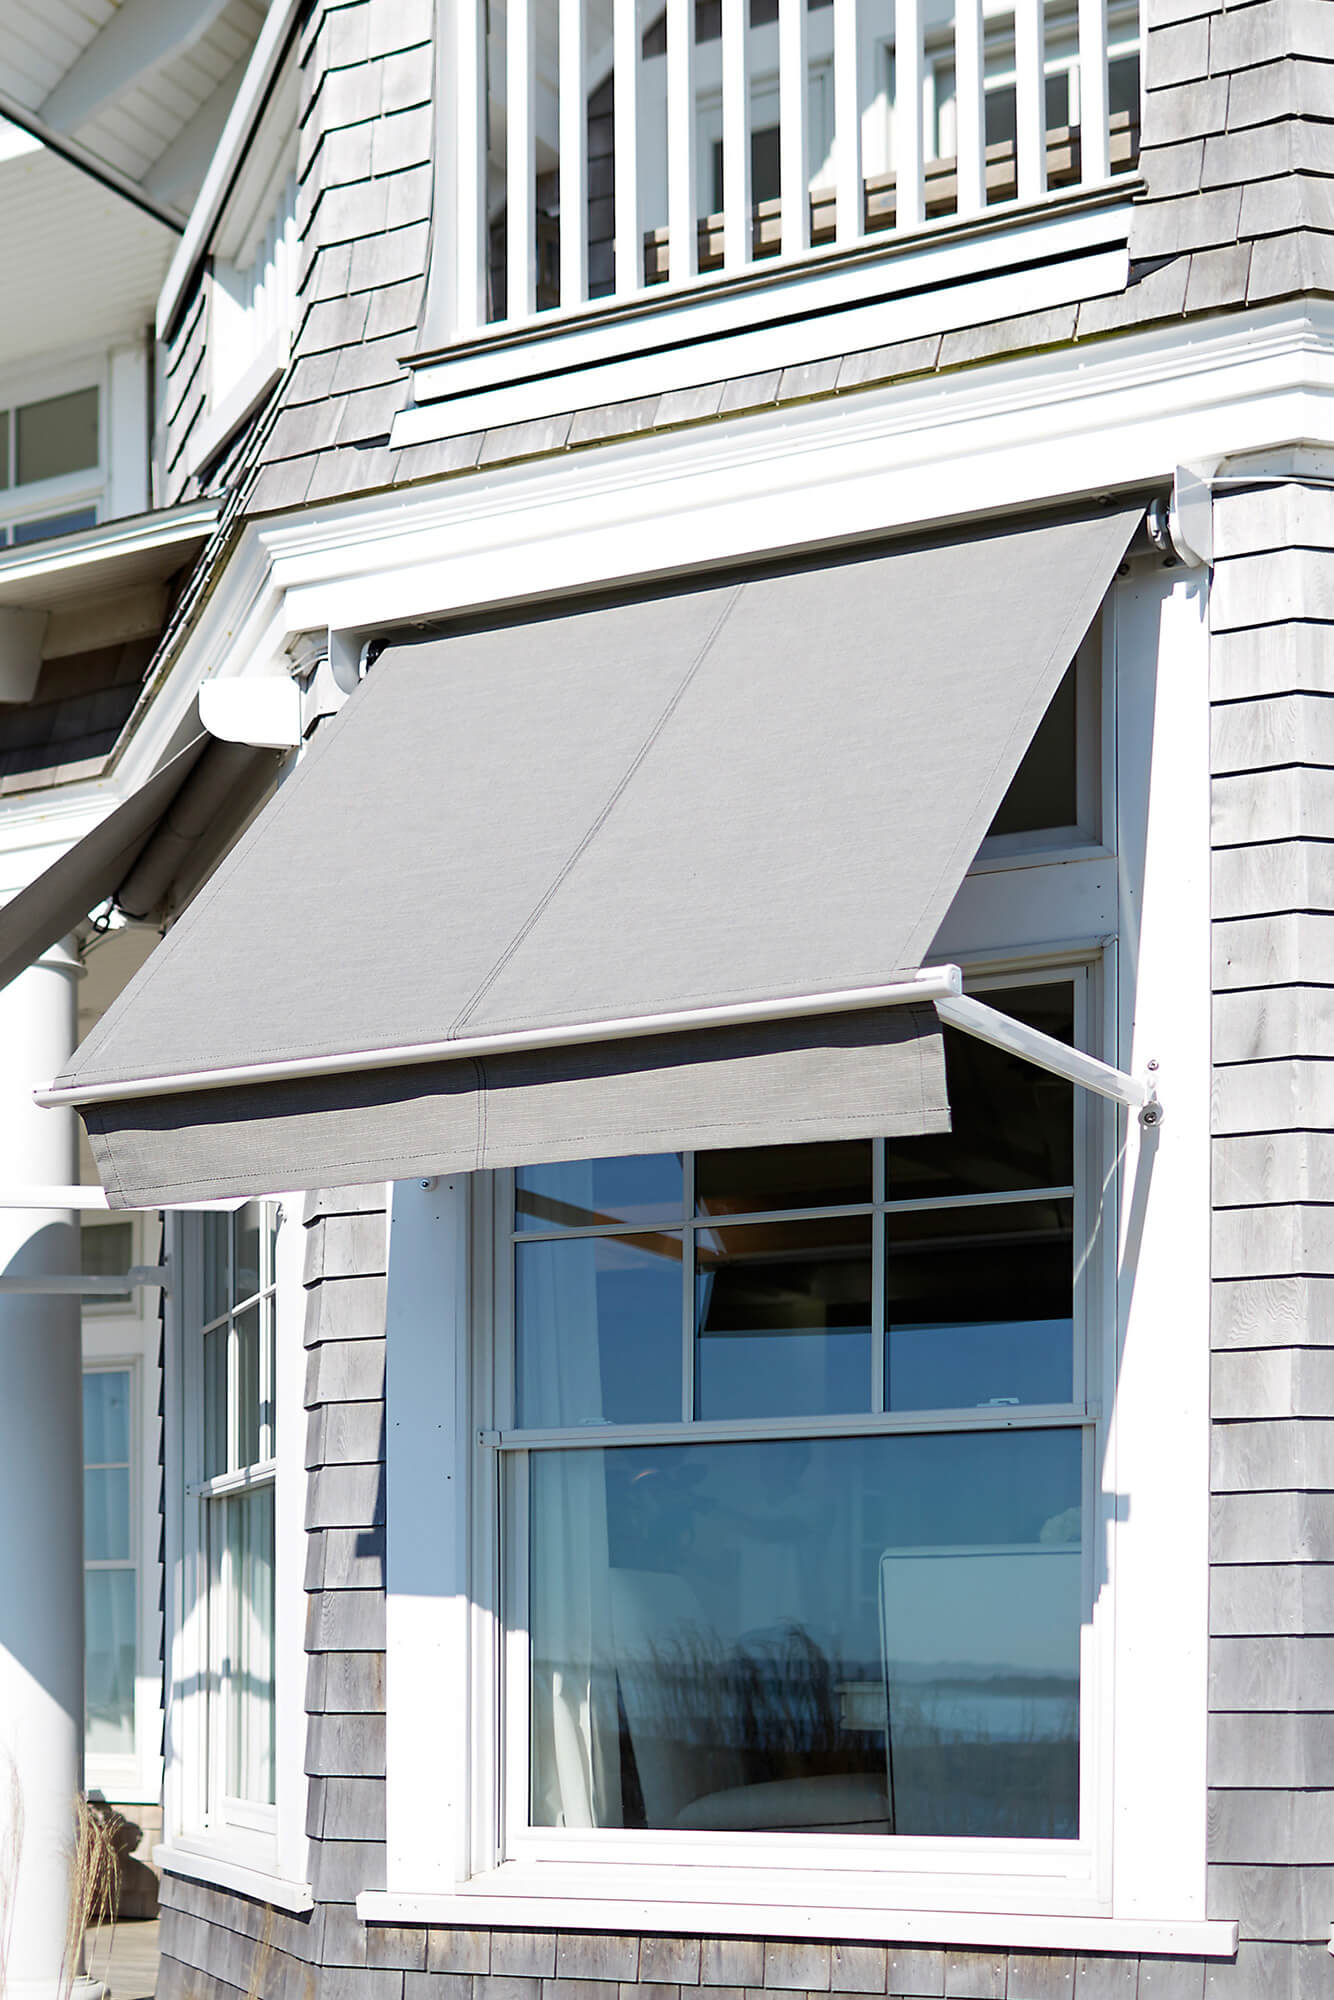 A home with many windows features multiple window awnings with grey Sunbrella fabric